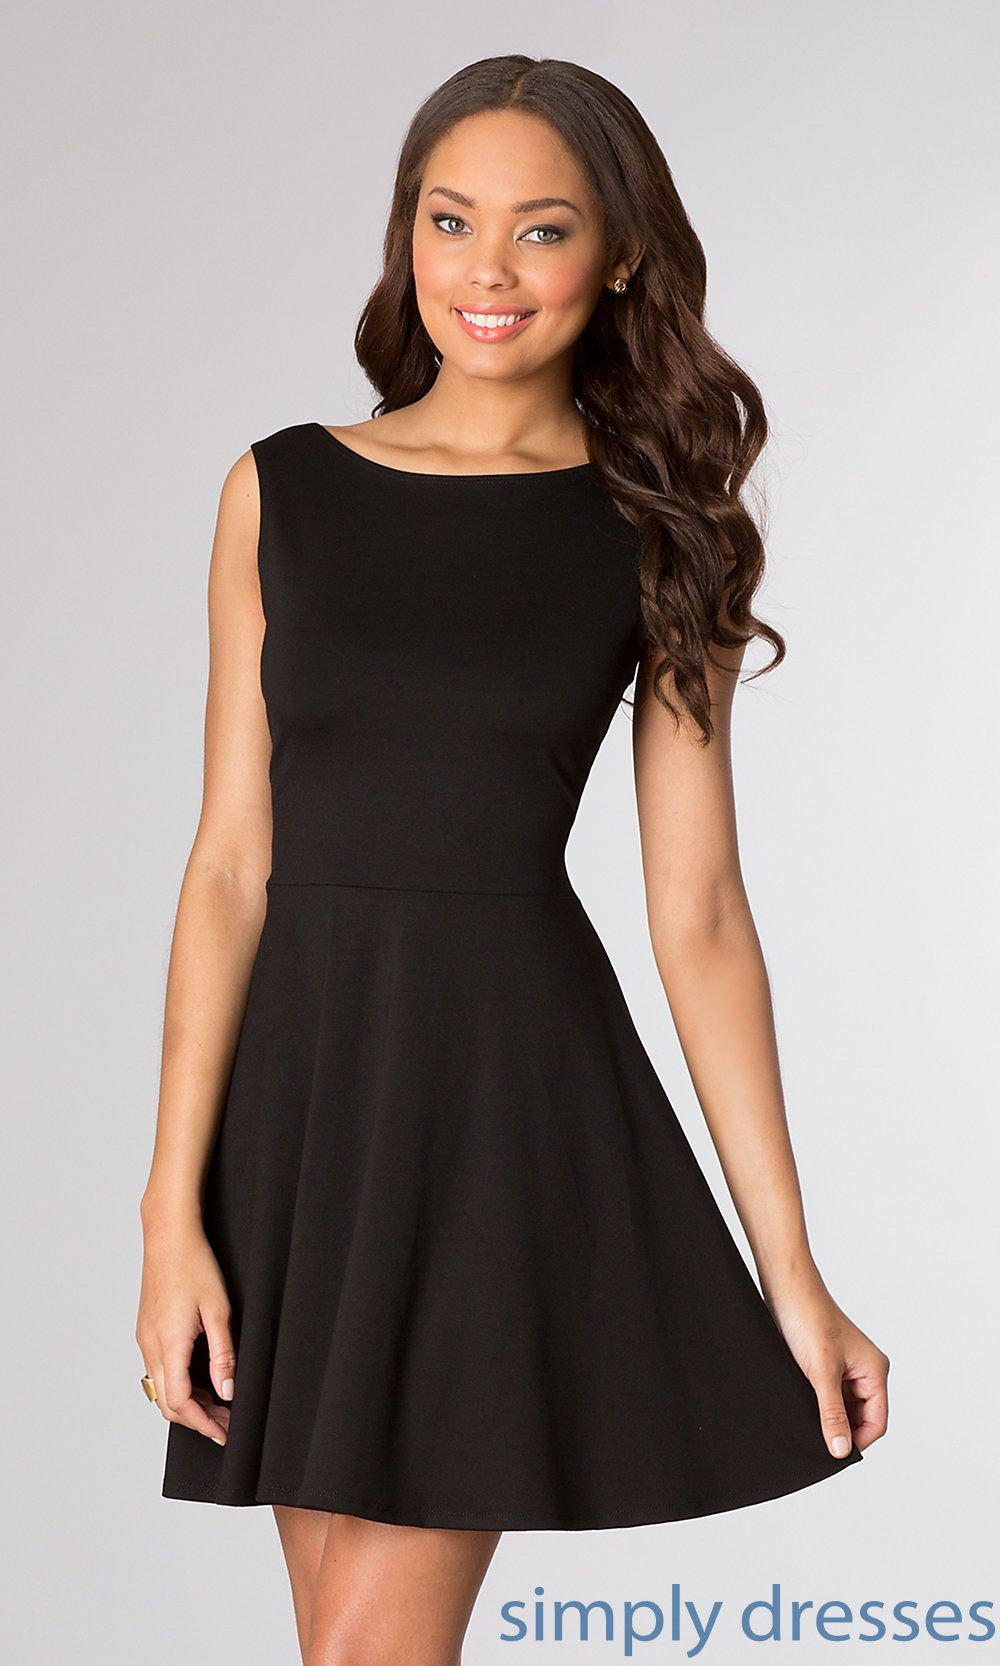 f1d913992c2 The chic and playful short sleeveless little black dress has a high neck  and when you turn around